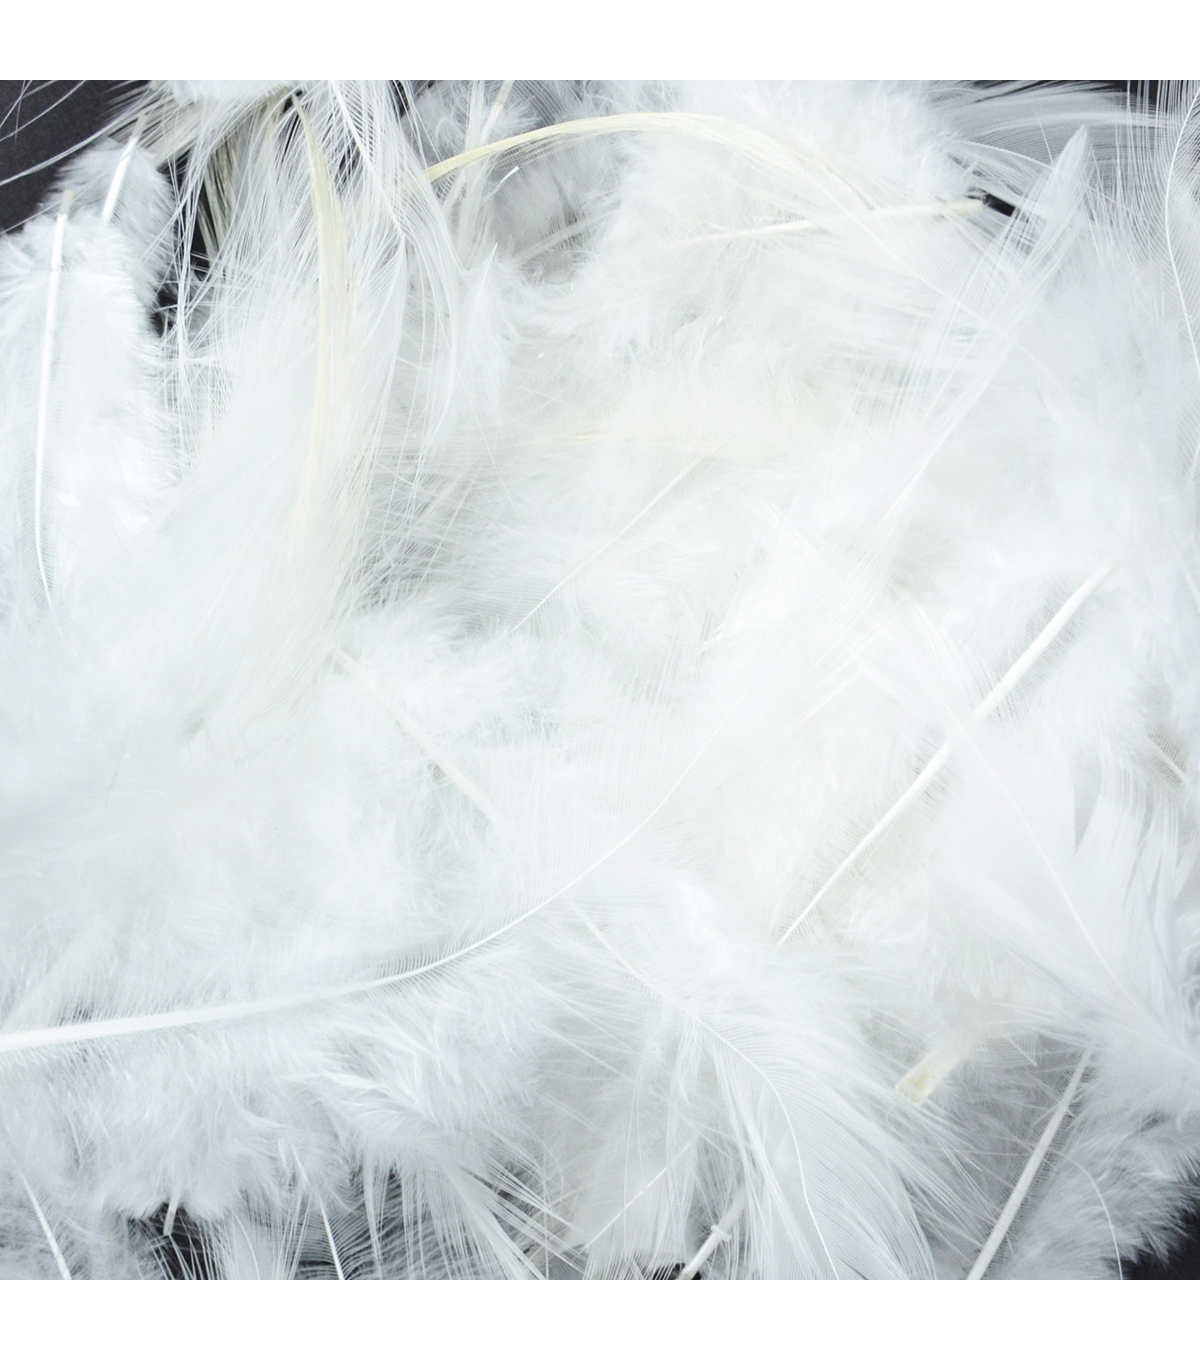 Dyed Saddle Hackle Feathers 7 grams White, 1 package